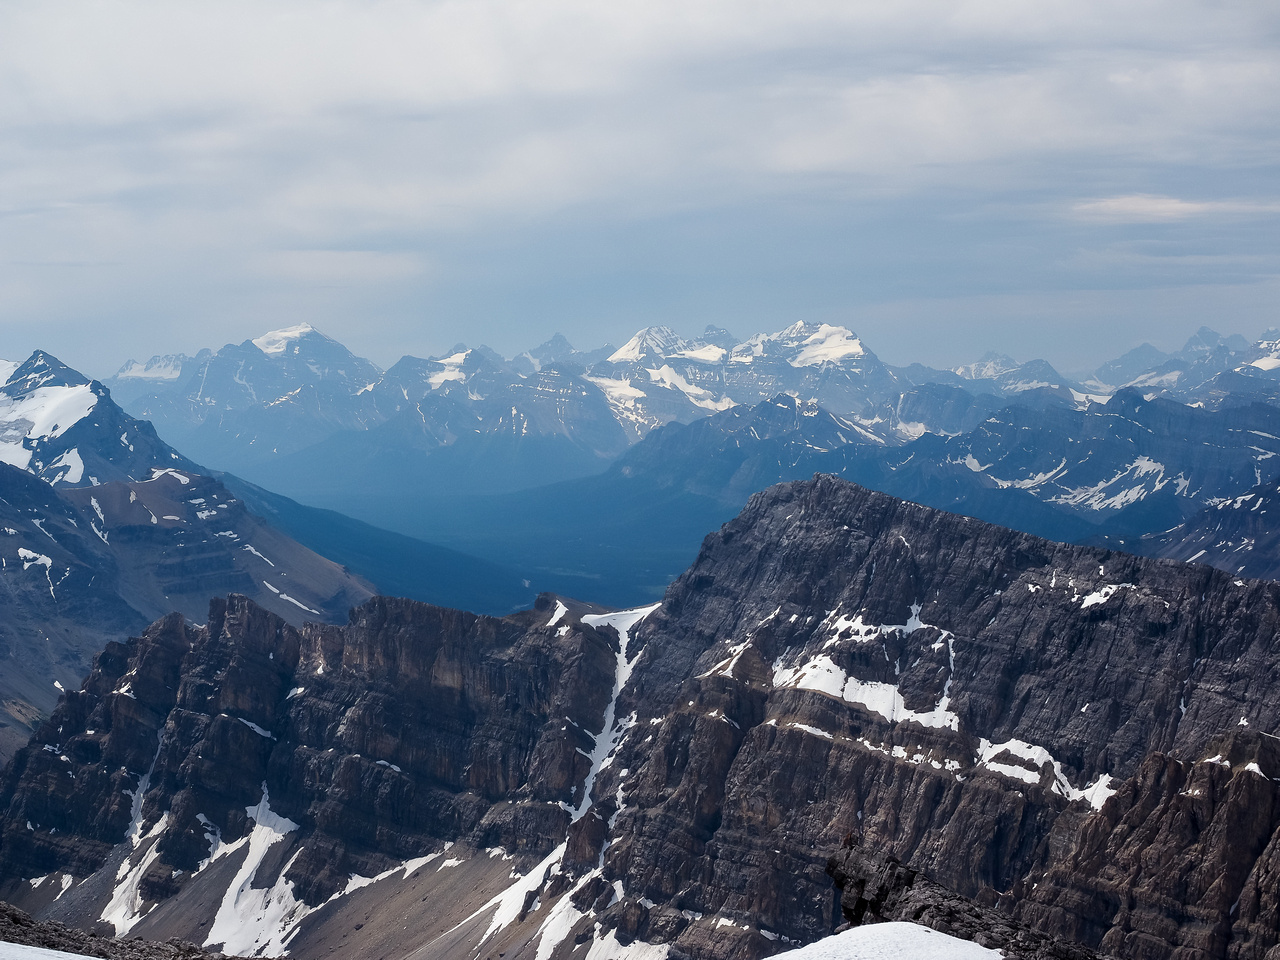 Looking towards Lake Louise with Mount Temple, Lefroy, Hungabee and Victoria visible through the atmospheric haze and the smoke from BC forest fires.